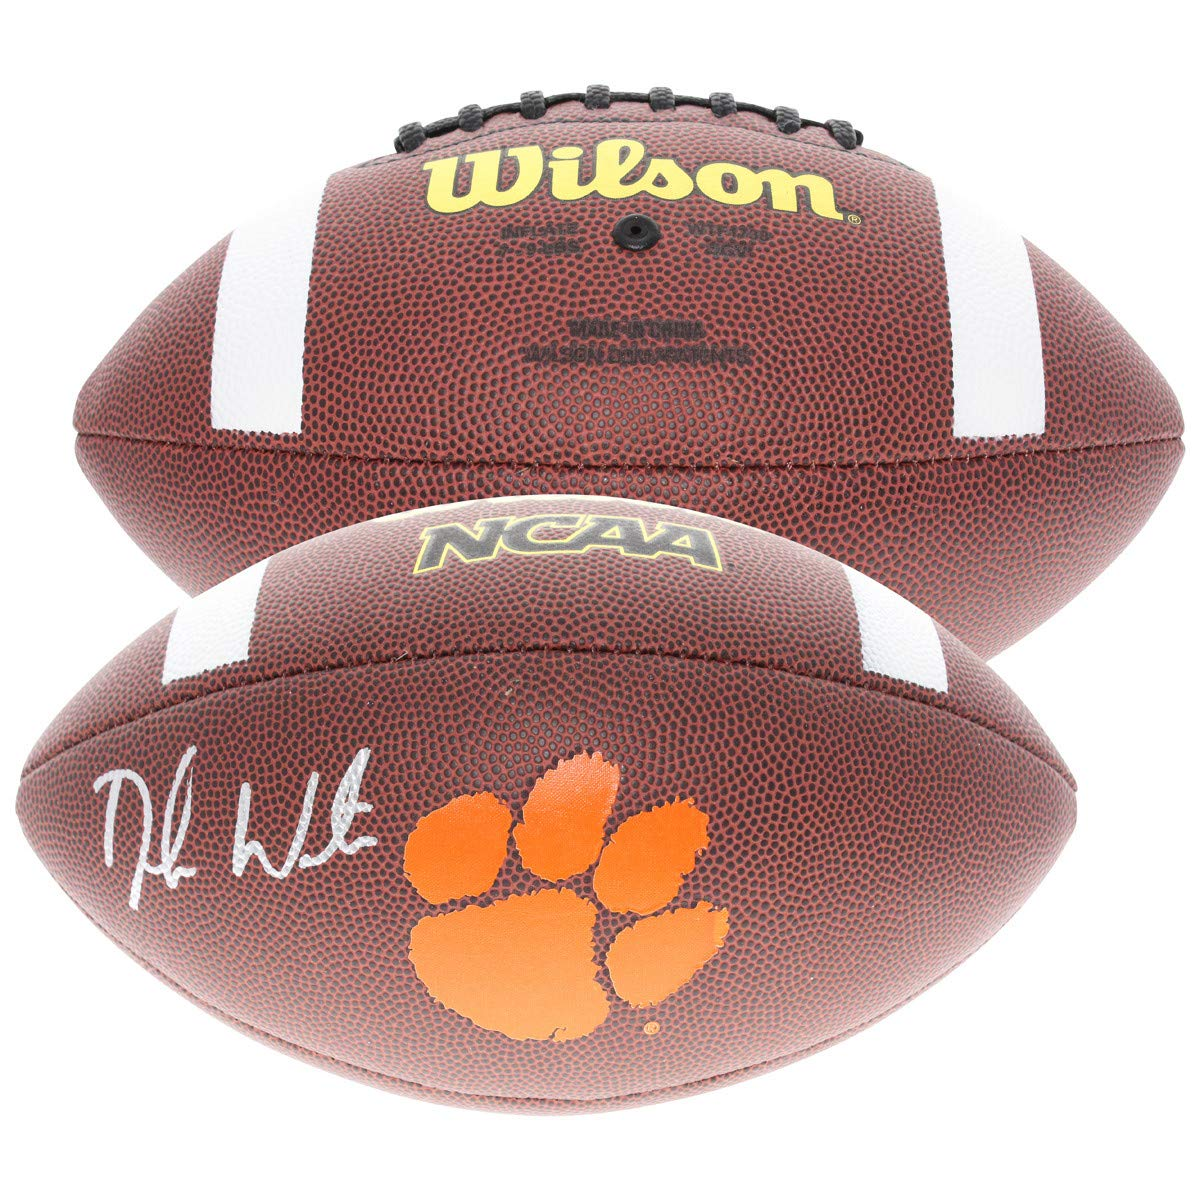 e8002209669 Deshaun Watson Autographed Signed Clemson Tigers Wilson Logo Football -  Beckett Authentic at Amazon's Sports Collectibles Store